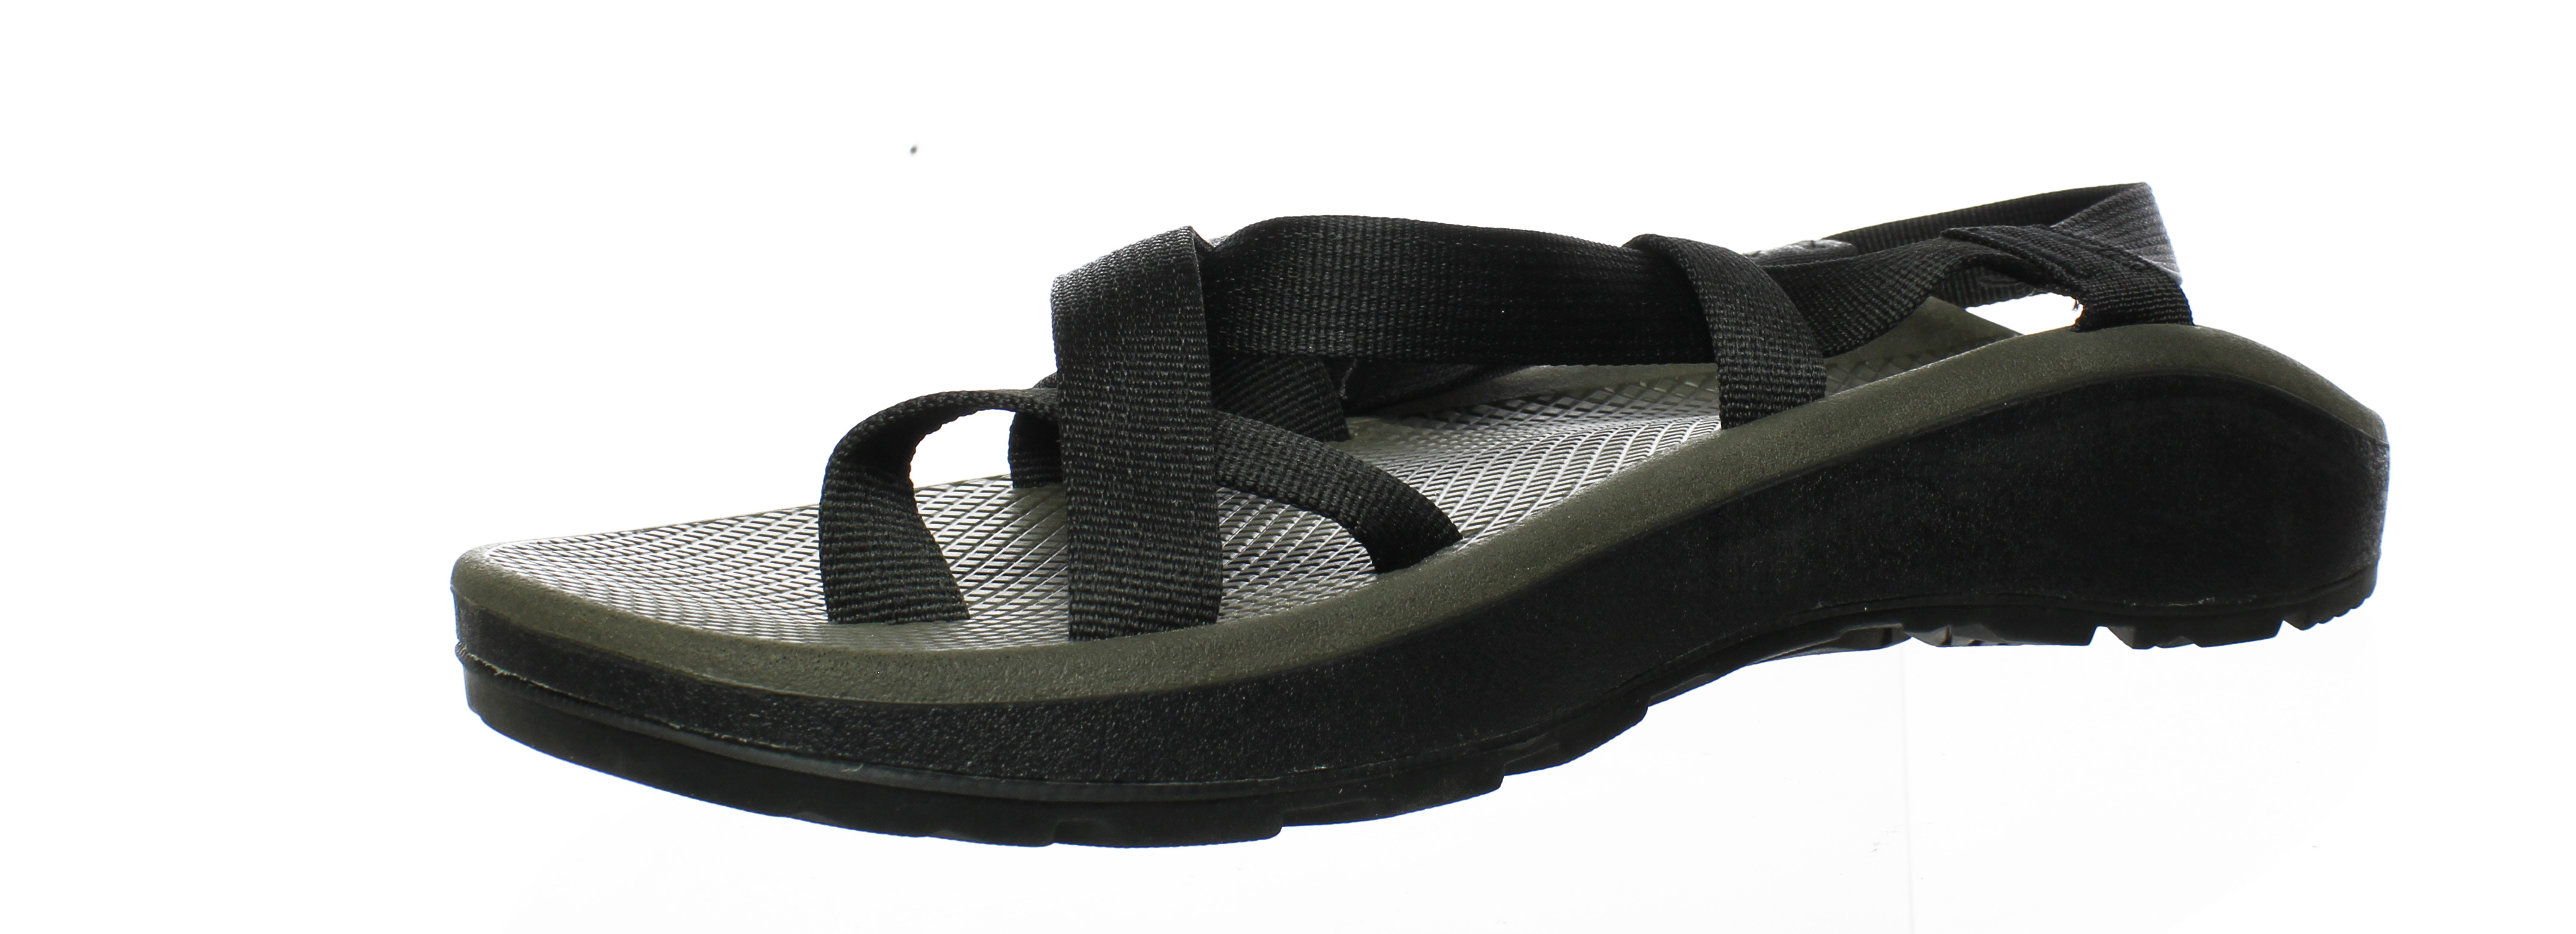 ba550a9c29bc ... Picture 2 of 4  Picture 3 of 4  Picture 4 of 4. Chaco Mens Zcloud 2  Black Sport Sandals Size 15 ...